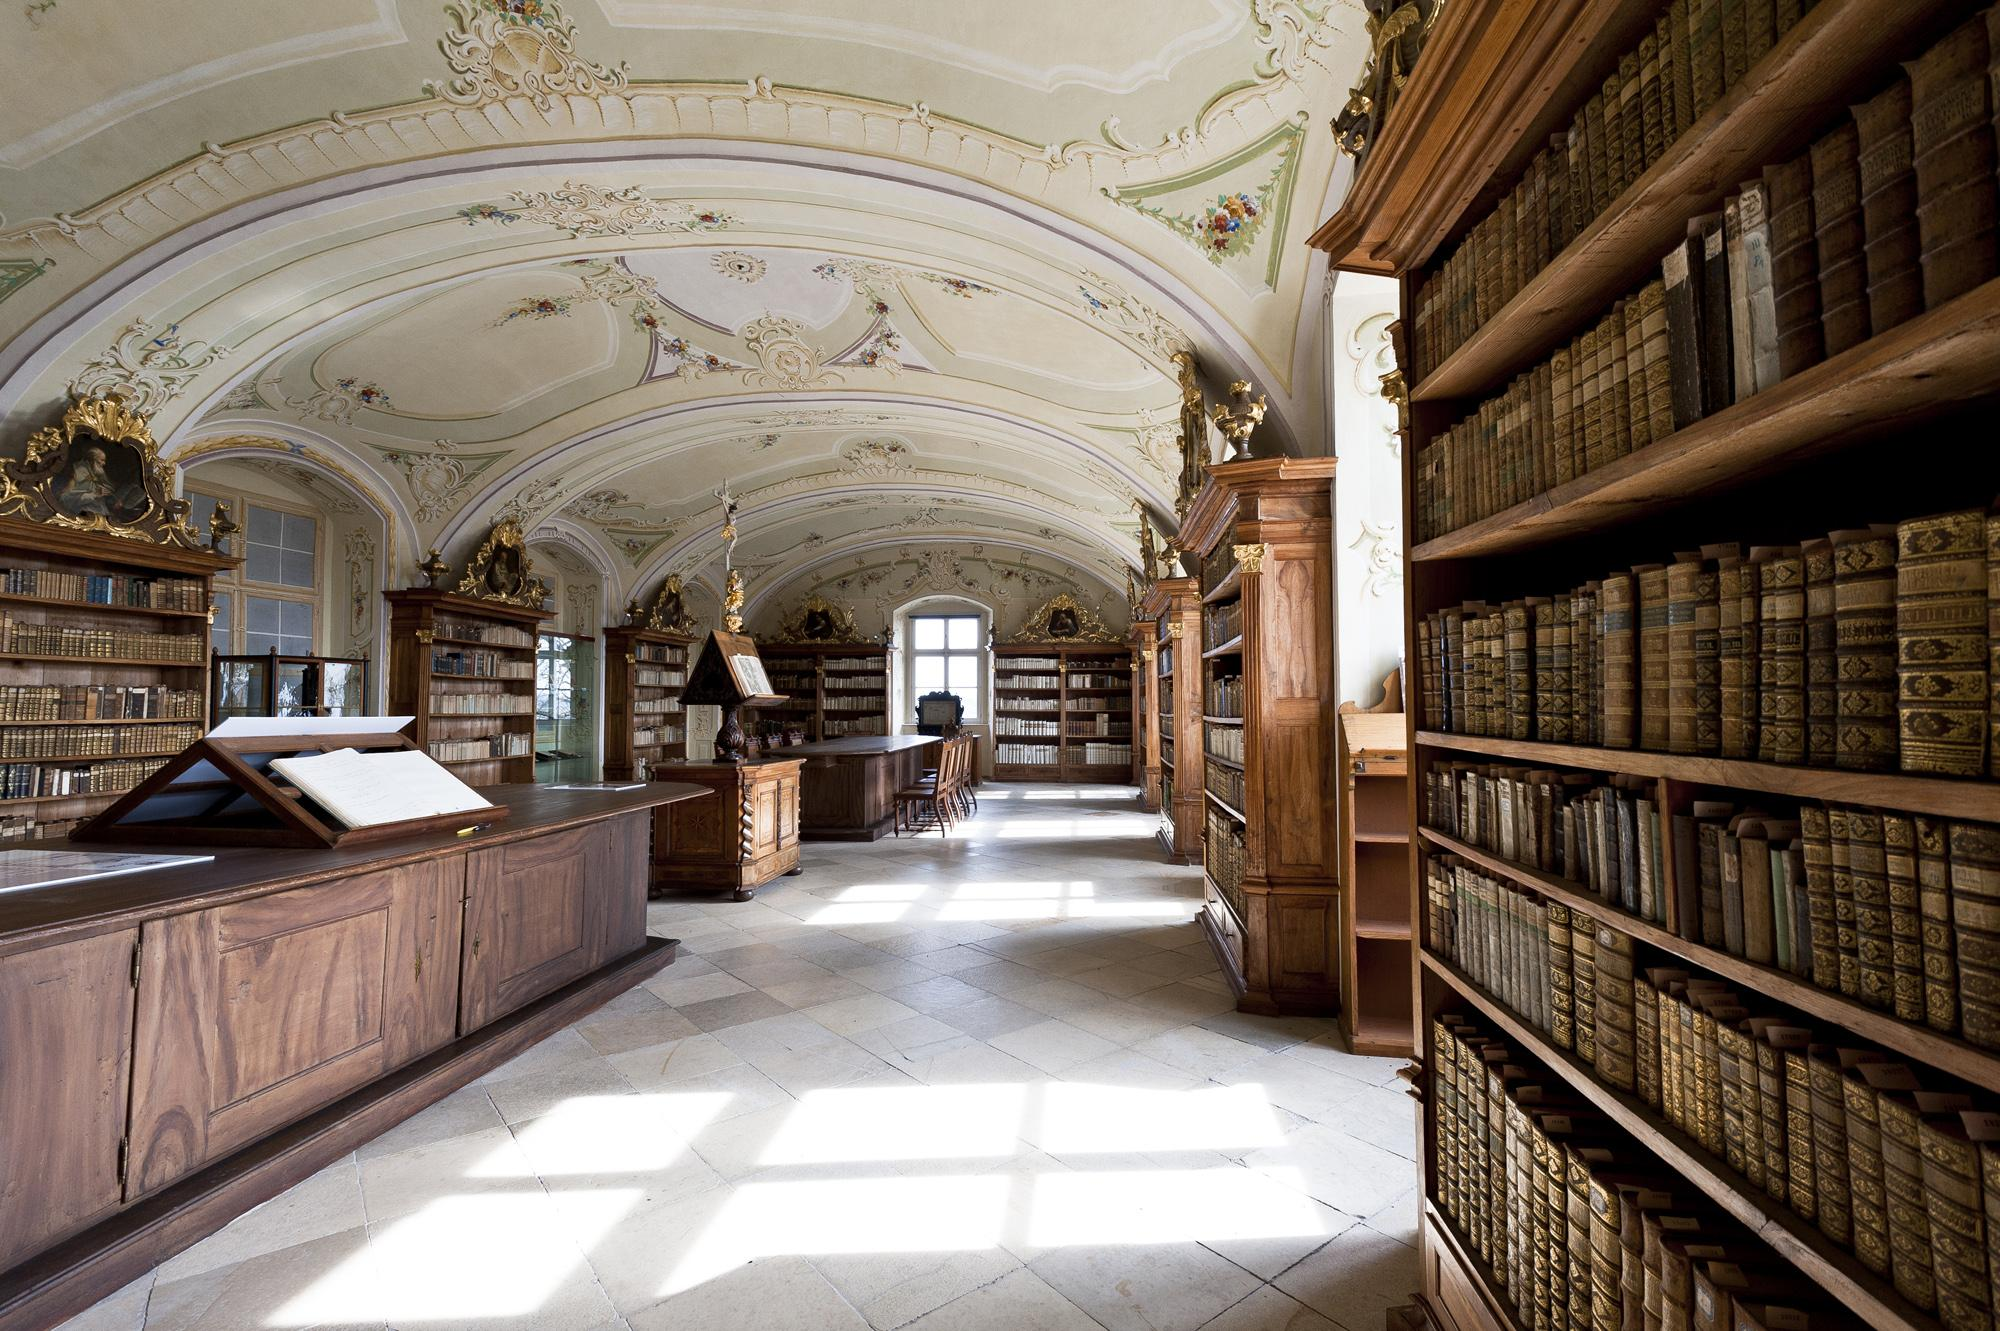 With a tour of the Maria Langegg Monastery, you'll visit the splendid library. – © Konstantin Gona